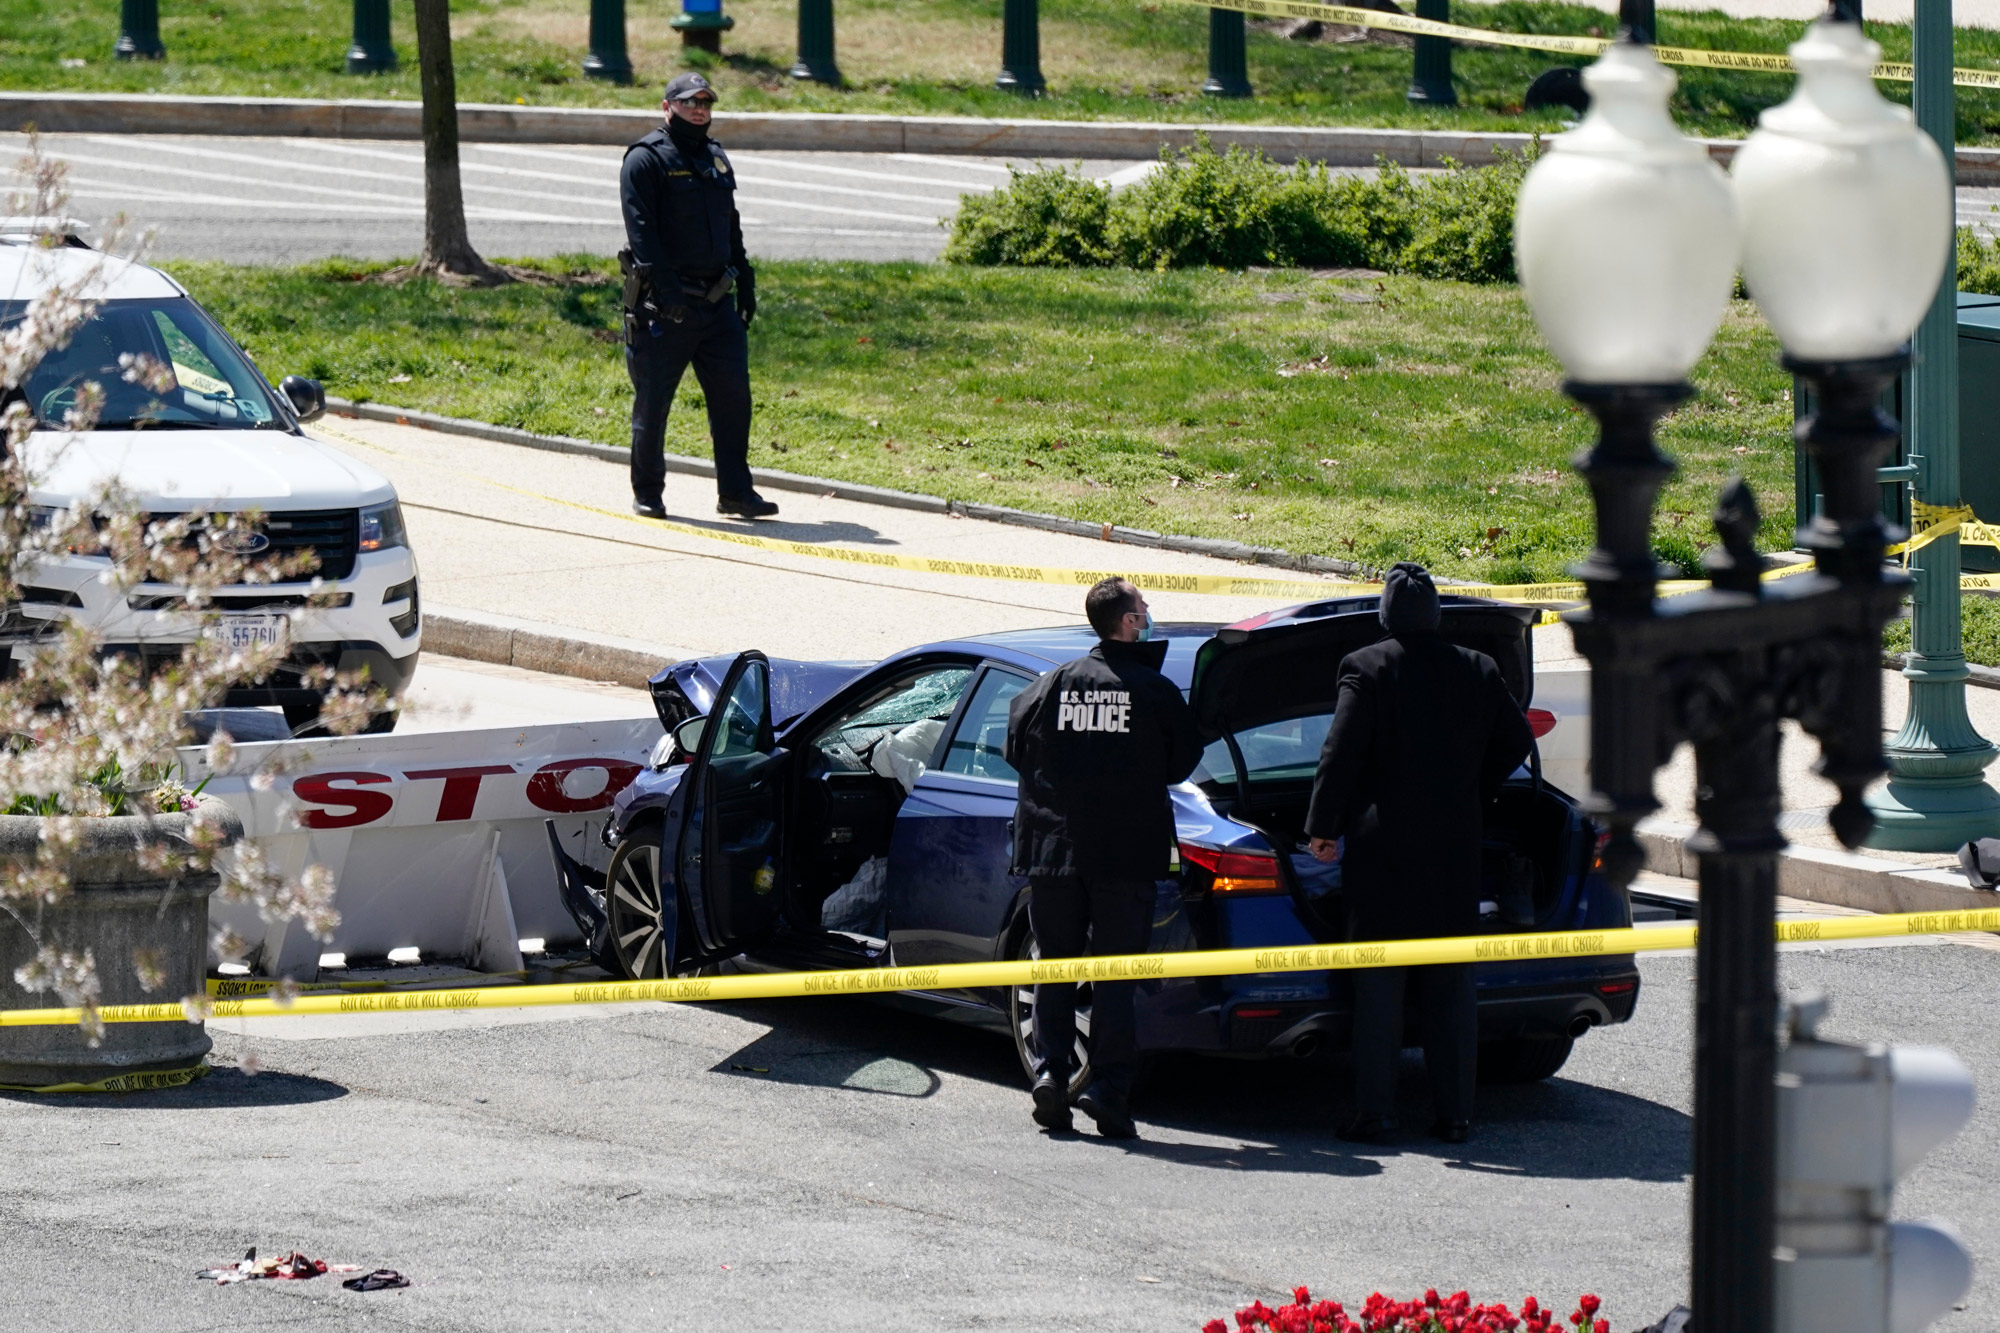 U.S. Capitol Police officers stand near a car that crashed into a barrier on Capitol Hill in Washington, DC, on April 2.